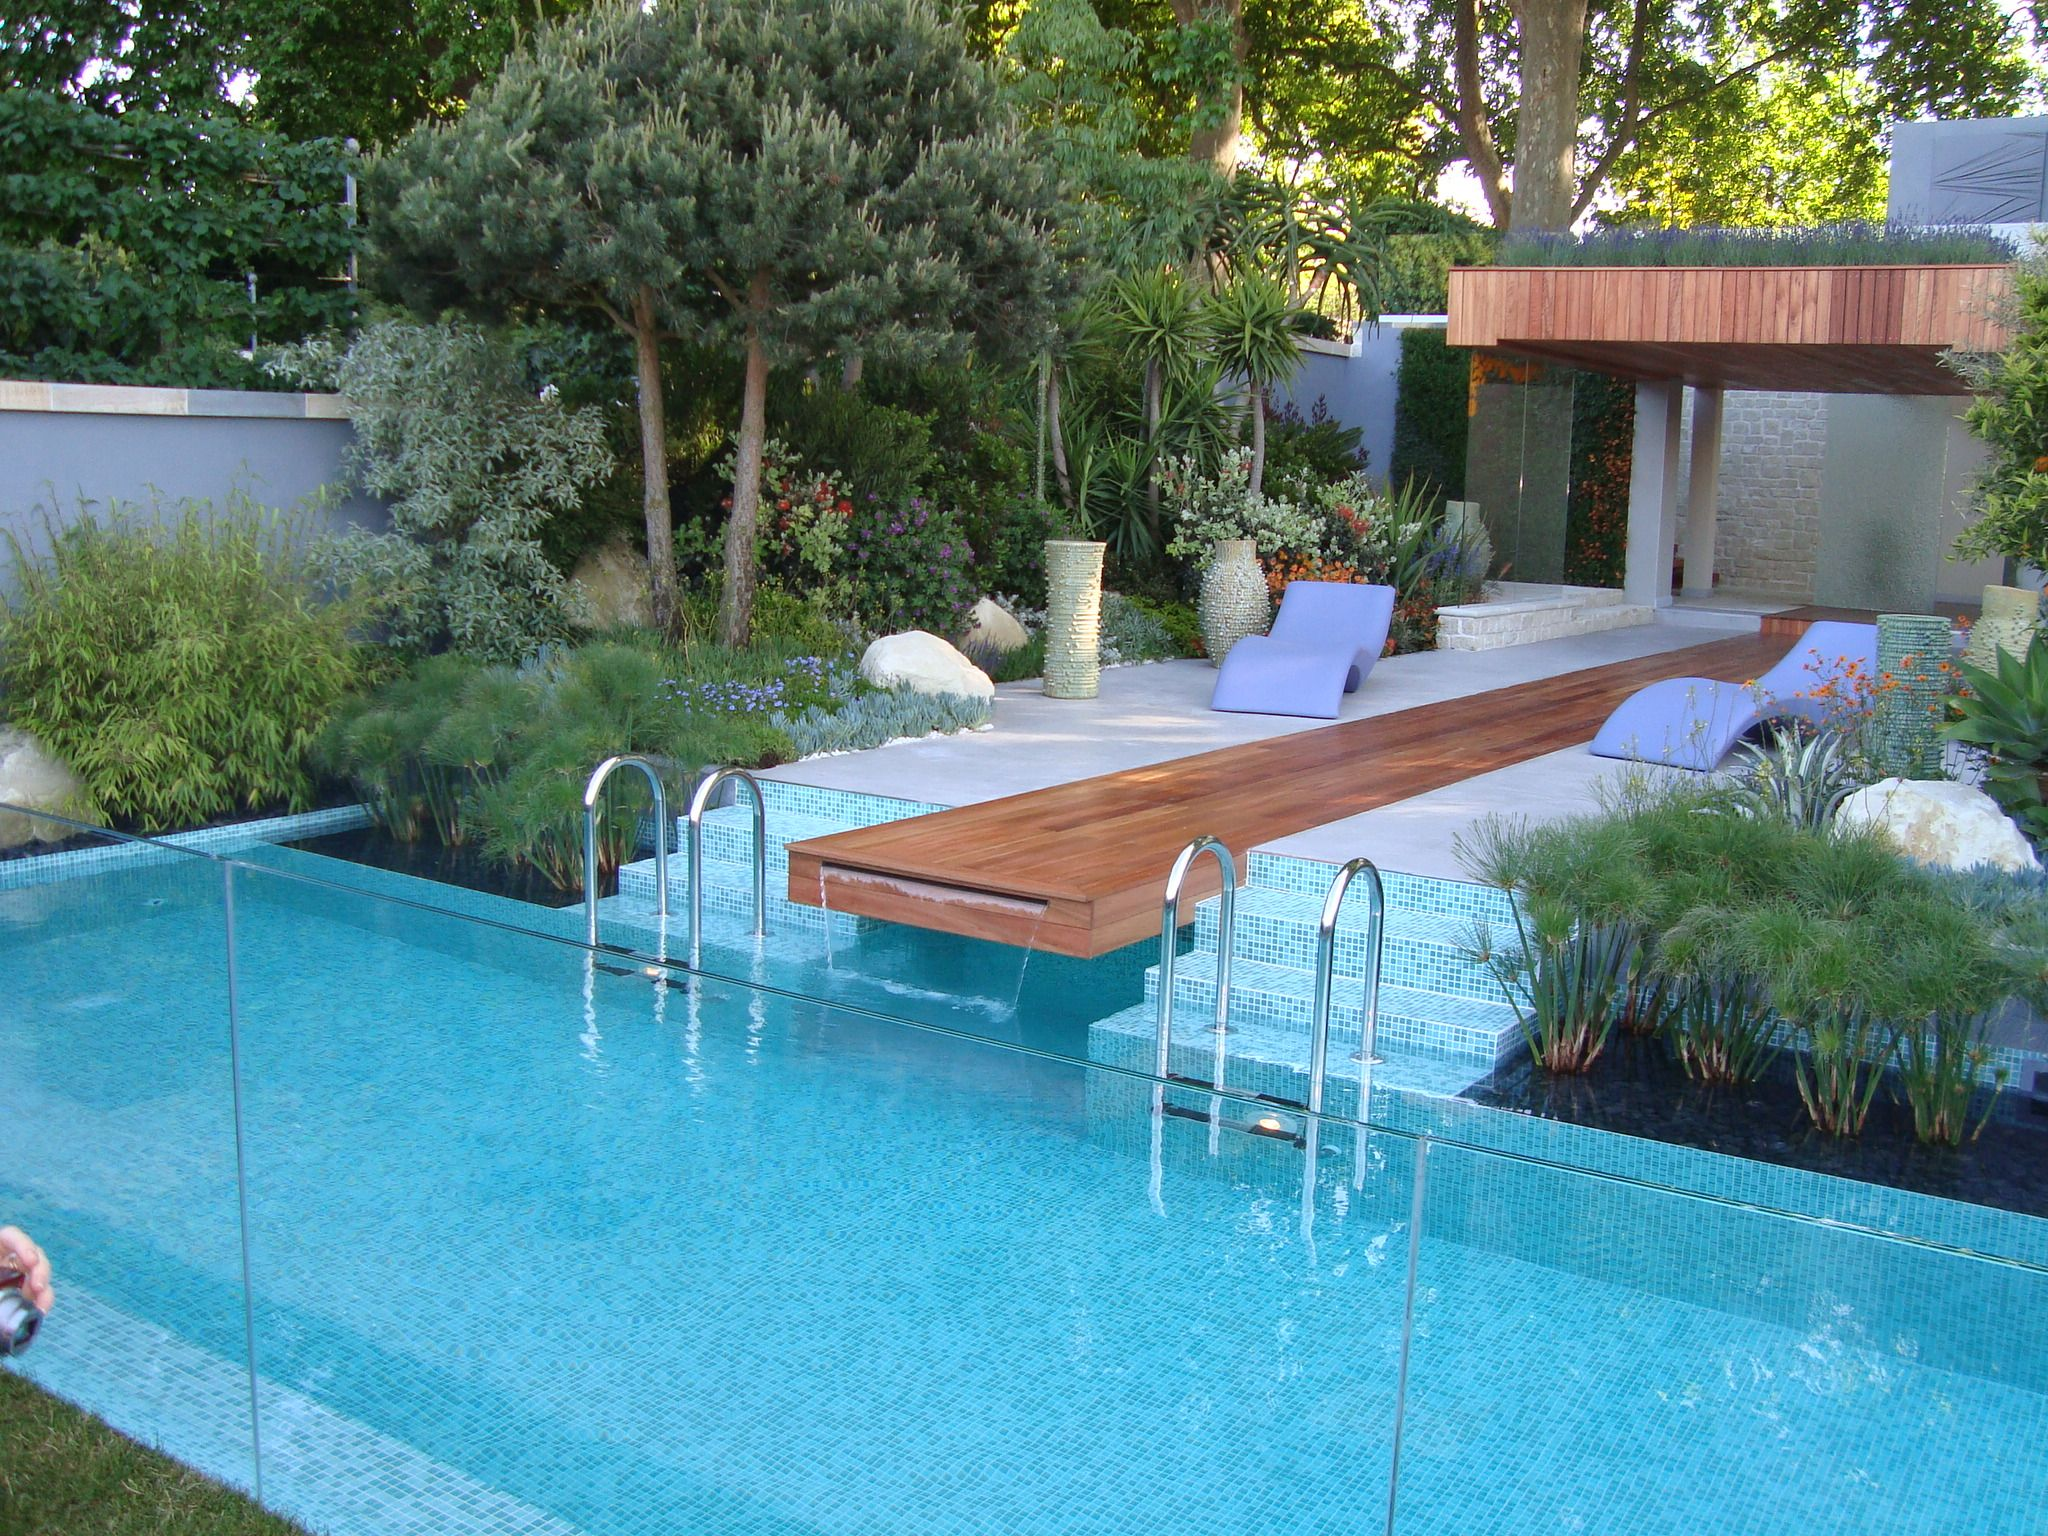 Swimming pool garden design  chelsea flower show 2013 | Integral swimming pool and garden ...